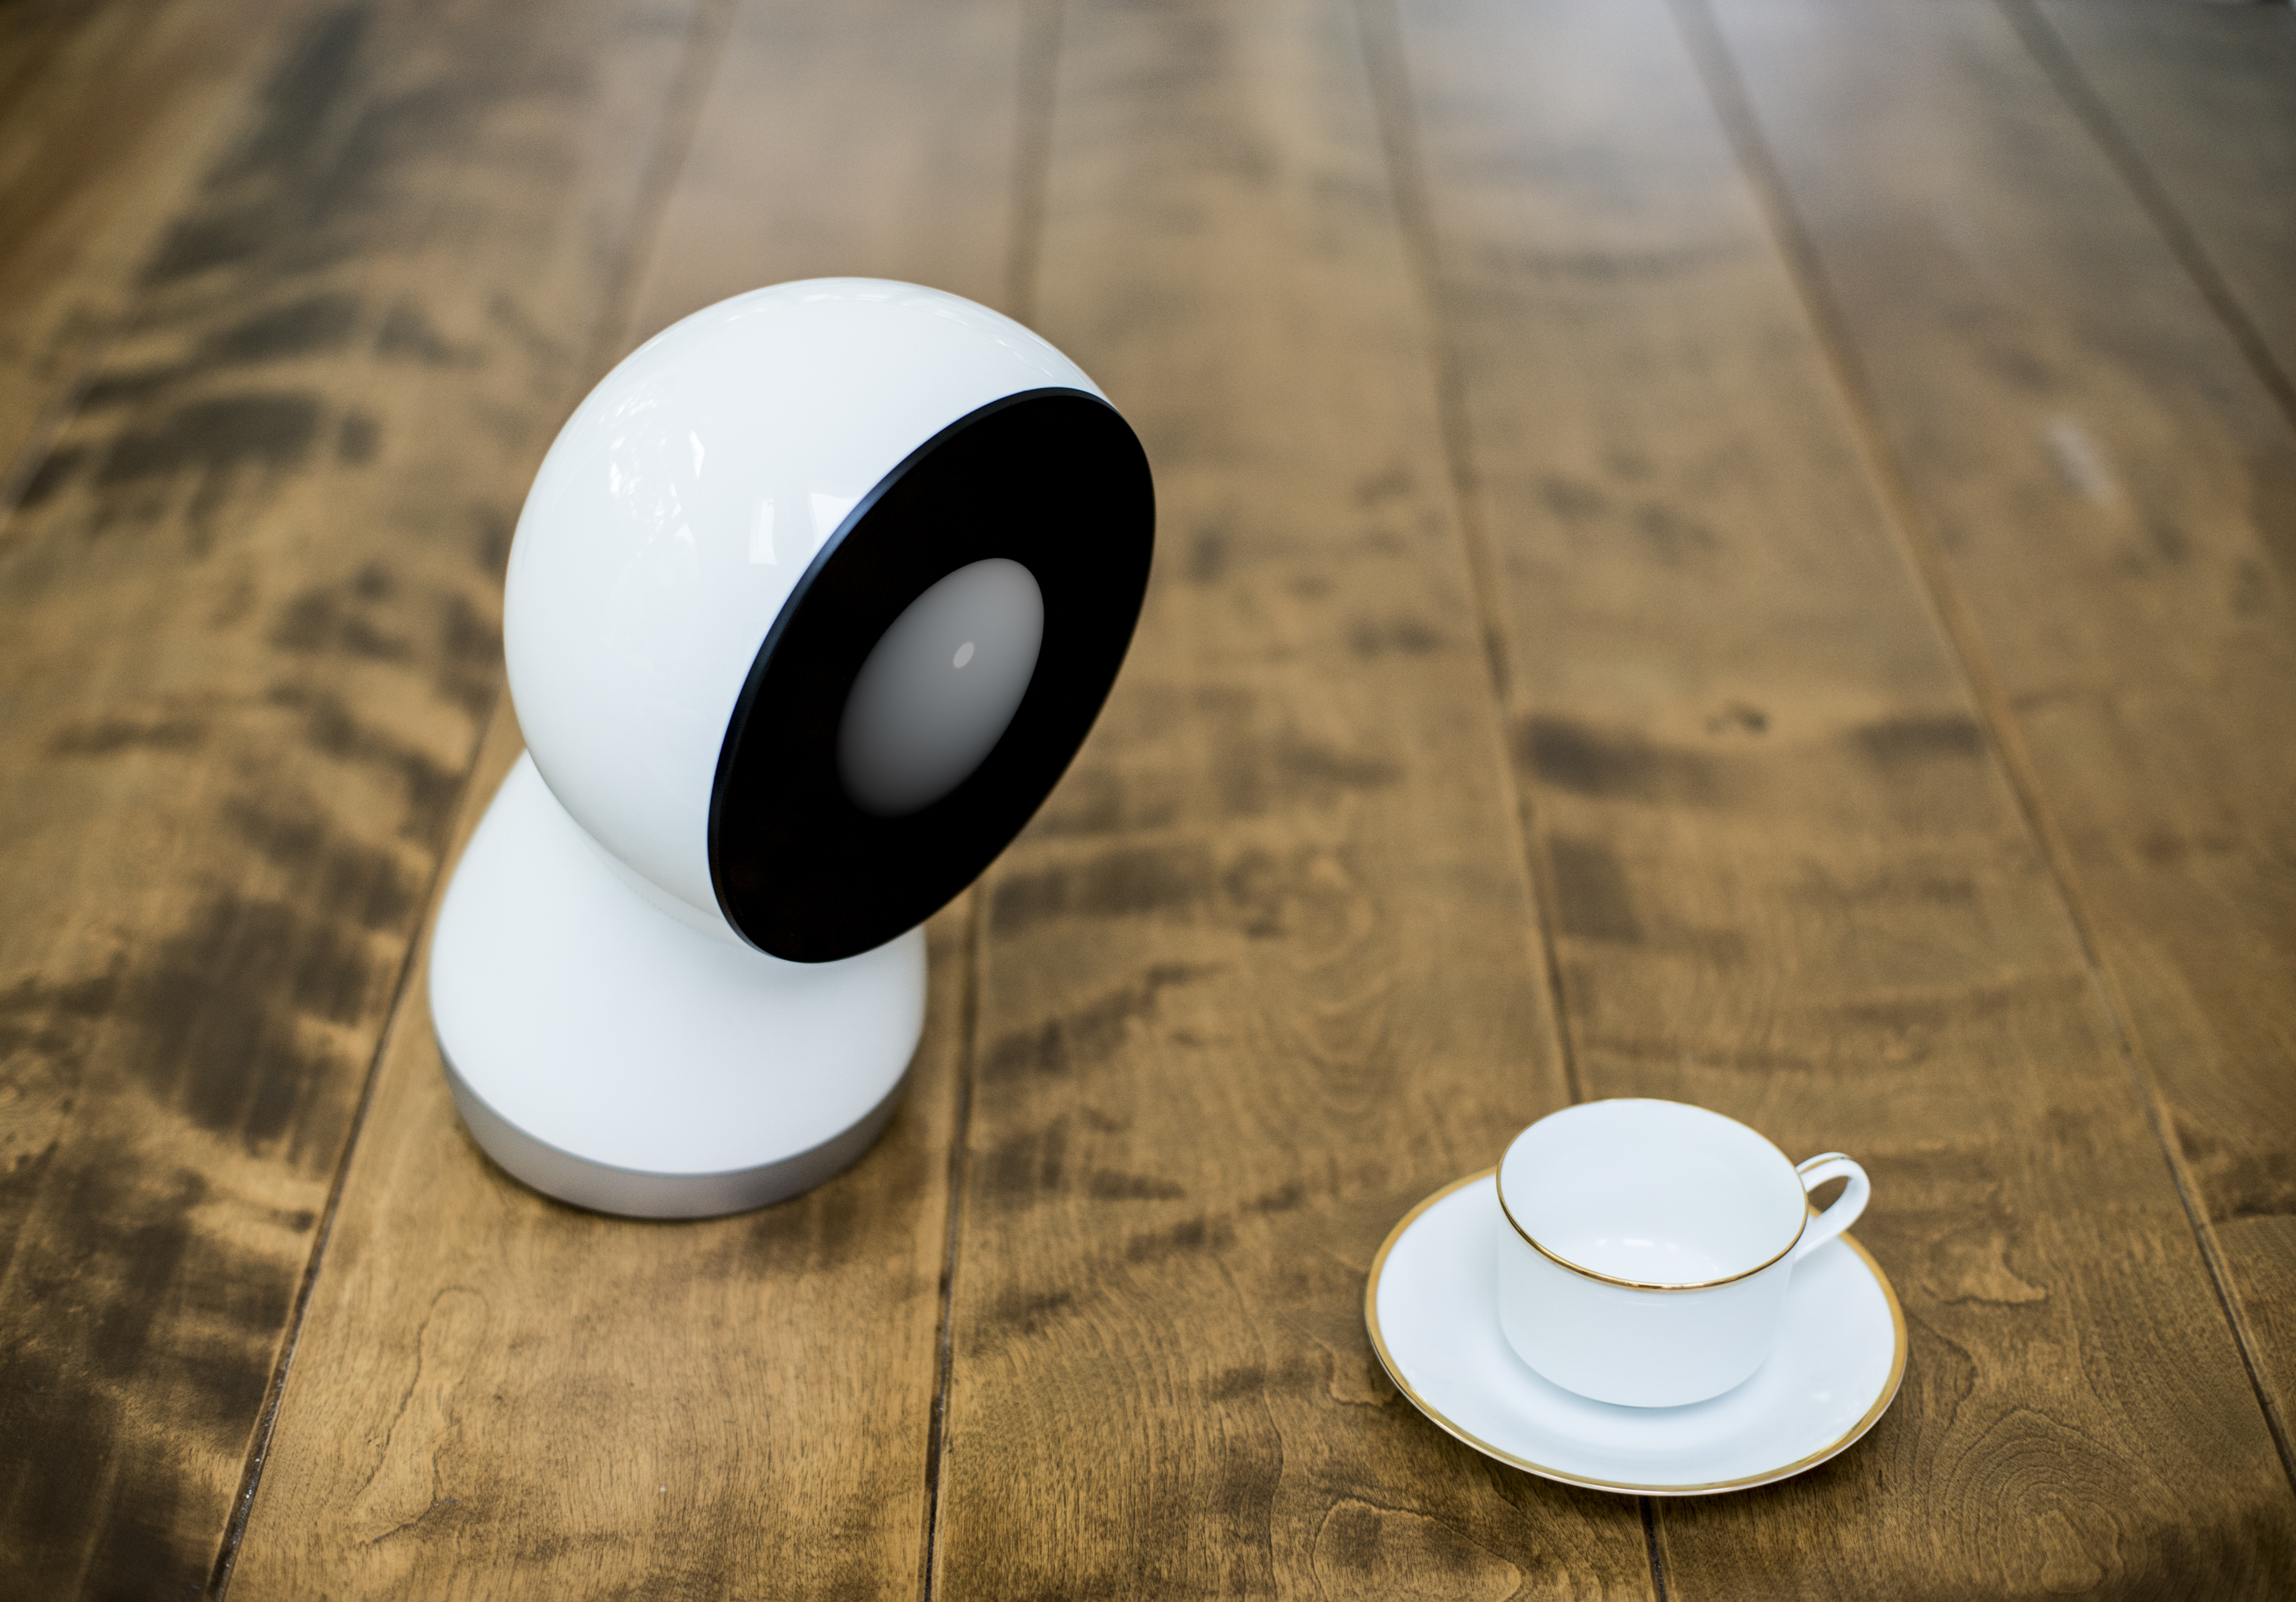 This is Jibo. Think Wall-E from the Pixar movie but as a kind of automated butler on steroids.